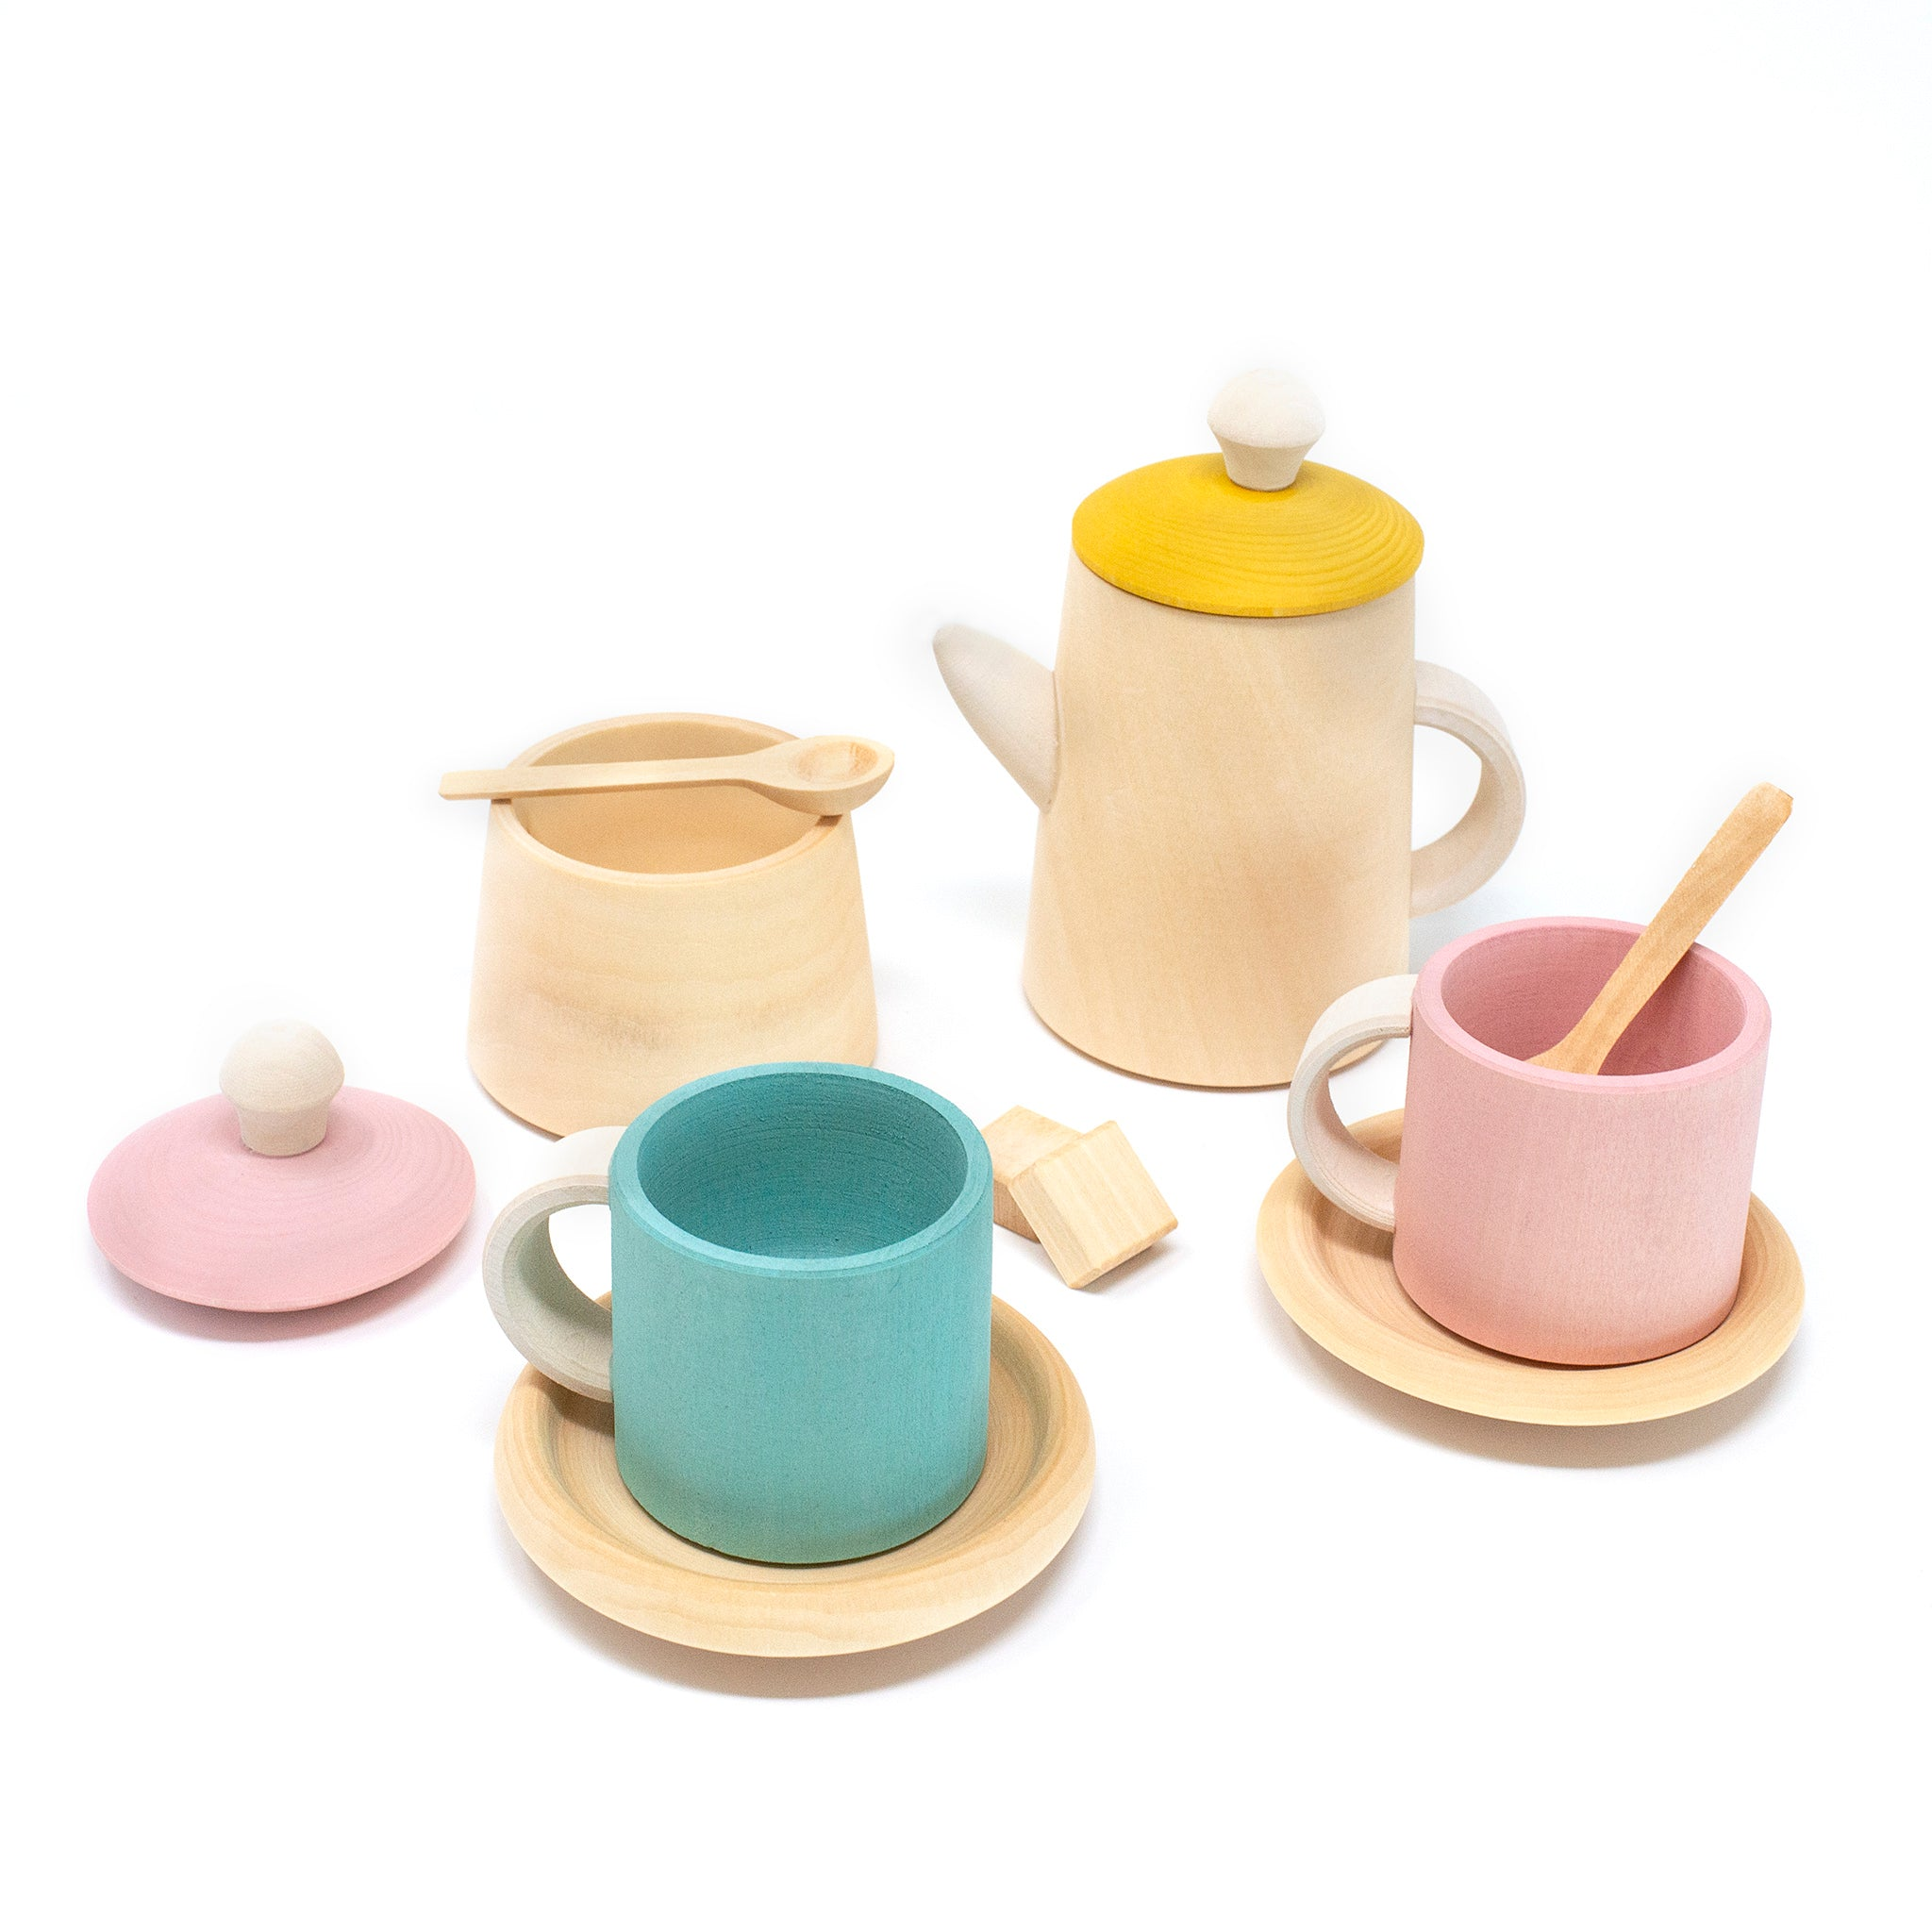 Pastel Wooden Toy Tea Set